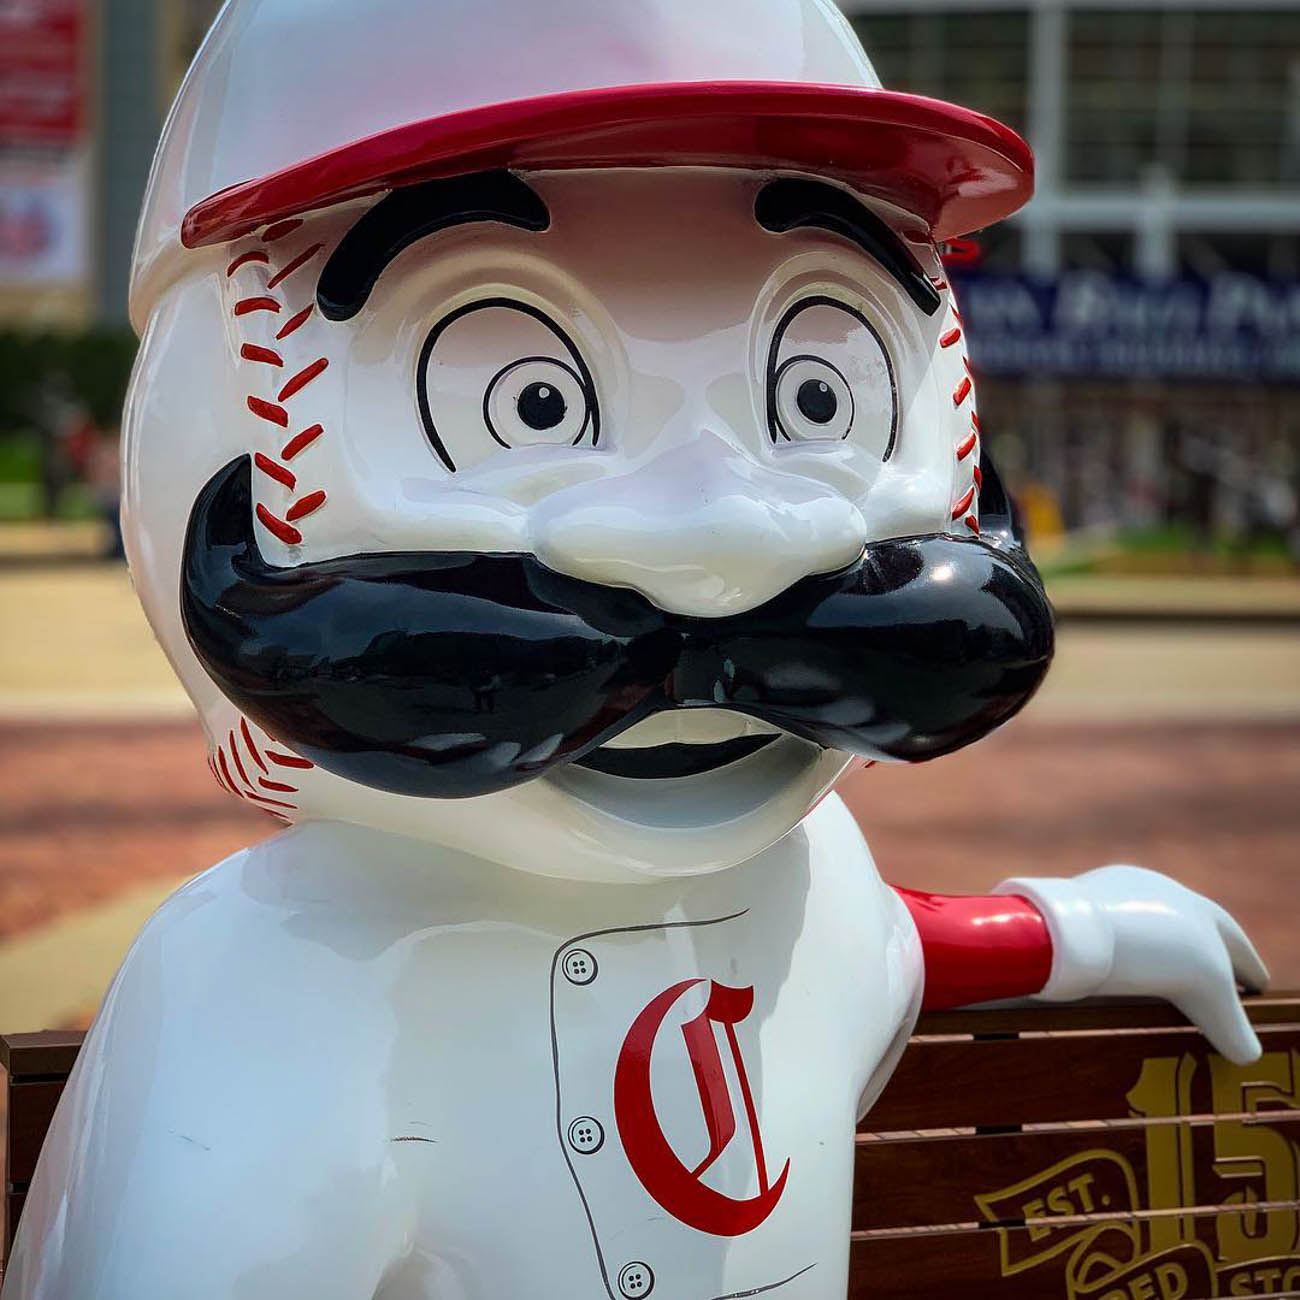 To celebrate the Reds' 150th Anniversary, 24 benches featuring Mr. Redlegs sculptures have been added to various spots around the area, as well as out of town locations including Dayton, Loveland, and Louisville, for the perfect Reds photo op. The mascot sports different uniforms from throughout the team's history at each of the benches. The Reds have been wearing these same throwback uniforms during their 2019 season. / Location: Great American Ballpark / Uniform: 1869 / Image courtesy of Instagram user @cmykdesigner    // Published: 5.14.19{ }